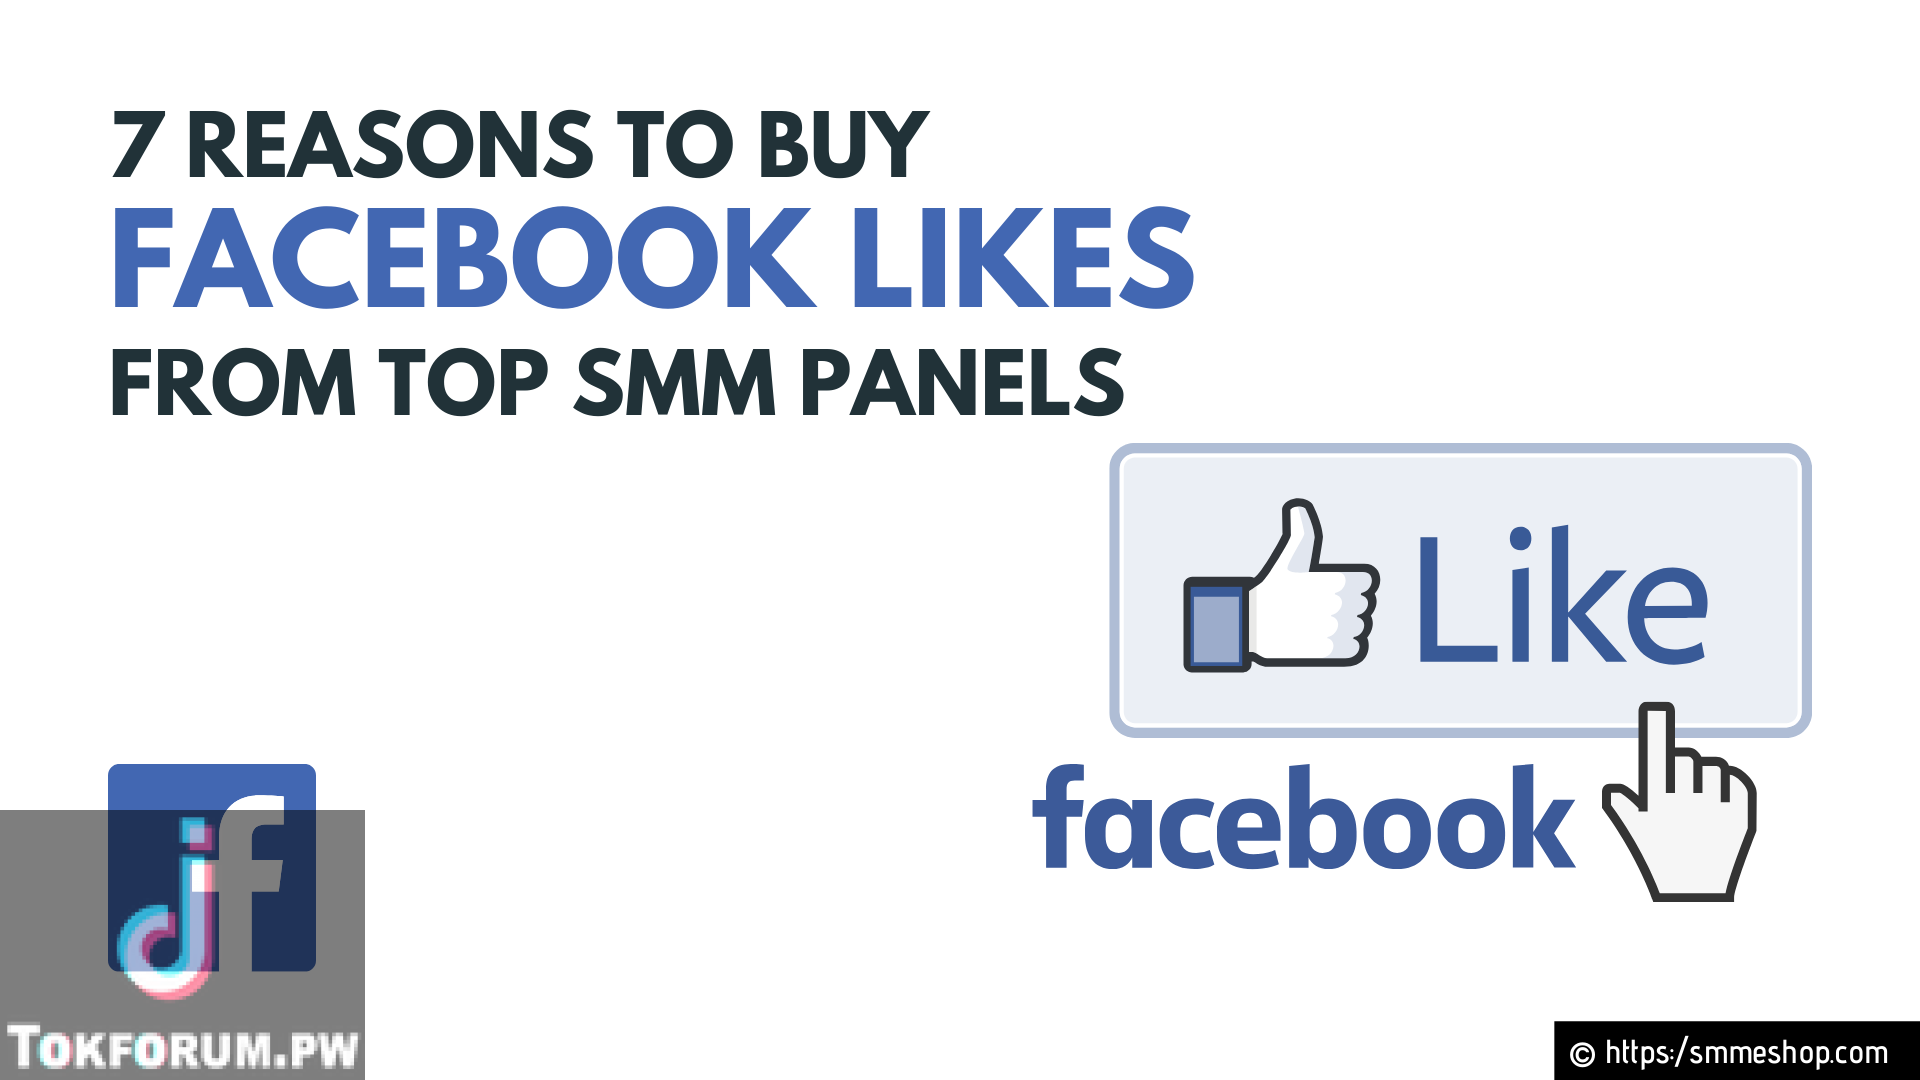 7-reasons-to-buy-facebook-likes-from-top-smm-panels_h1587744088-png.921